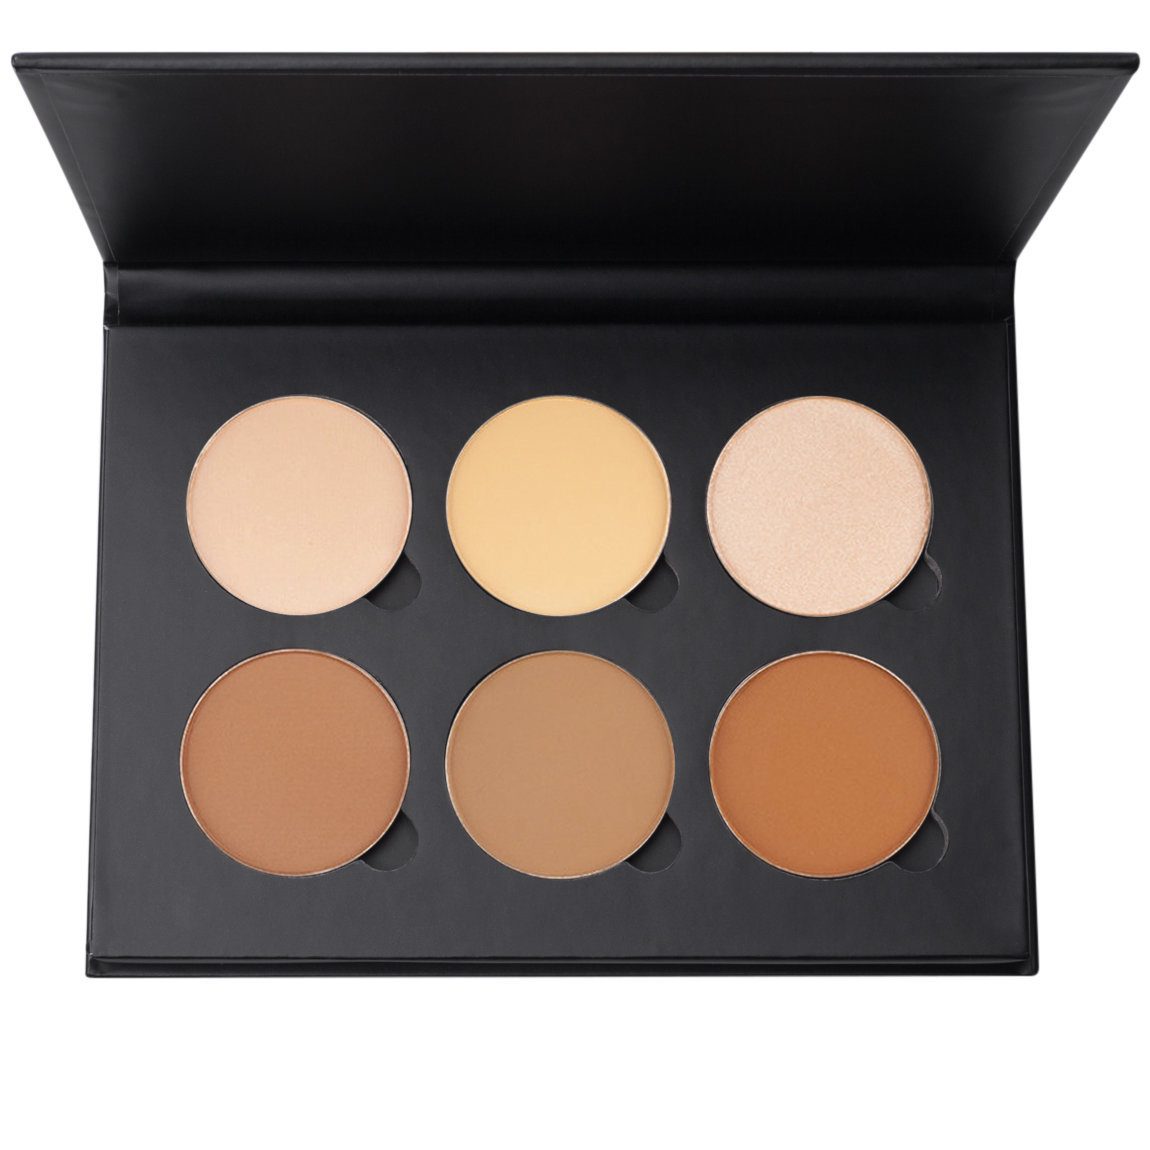 """Anastasia Beverly Hills Contour Kit """"Light to Medium""""   BUY THIS LOOK - CLICK HERE"""